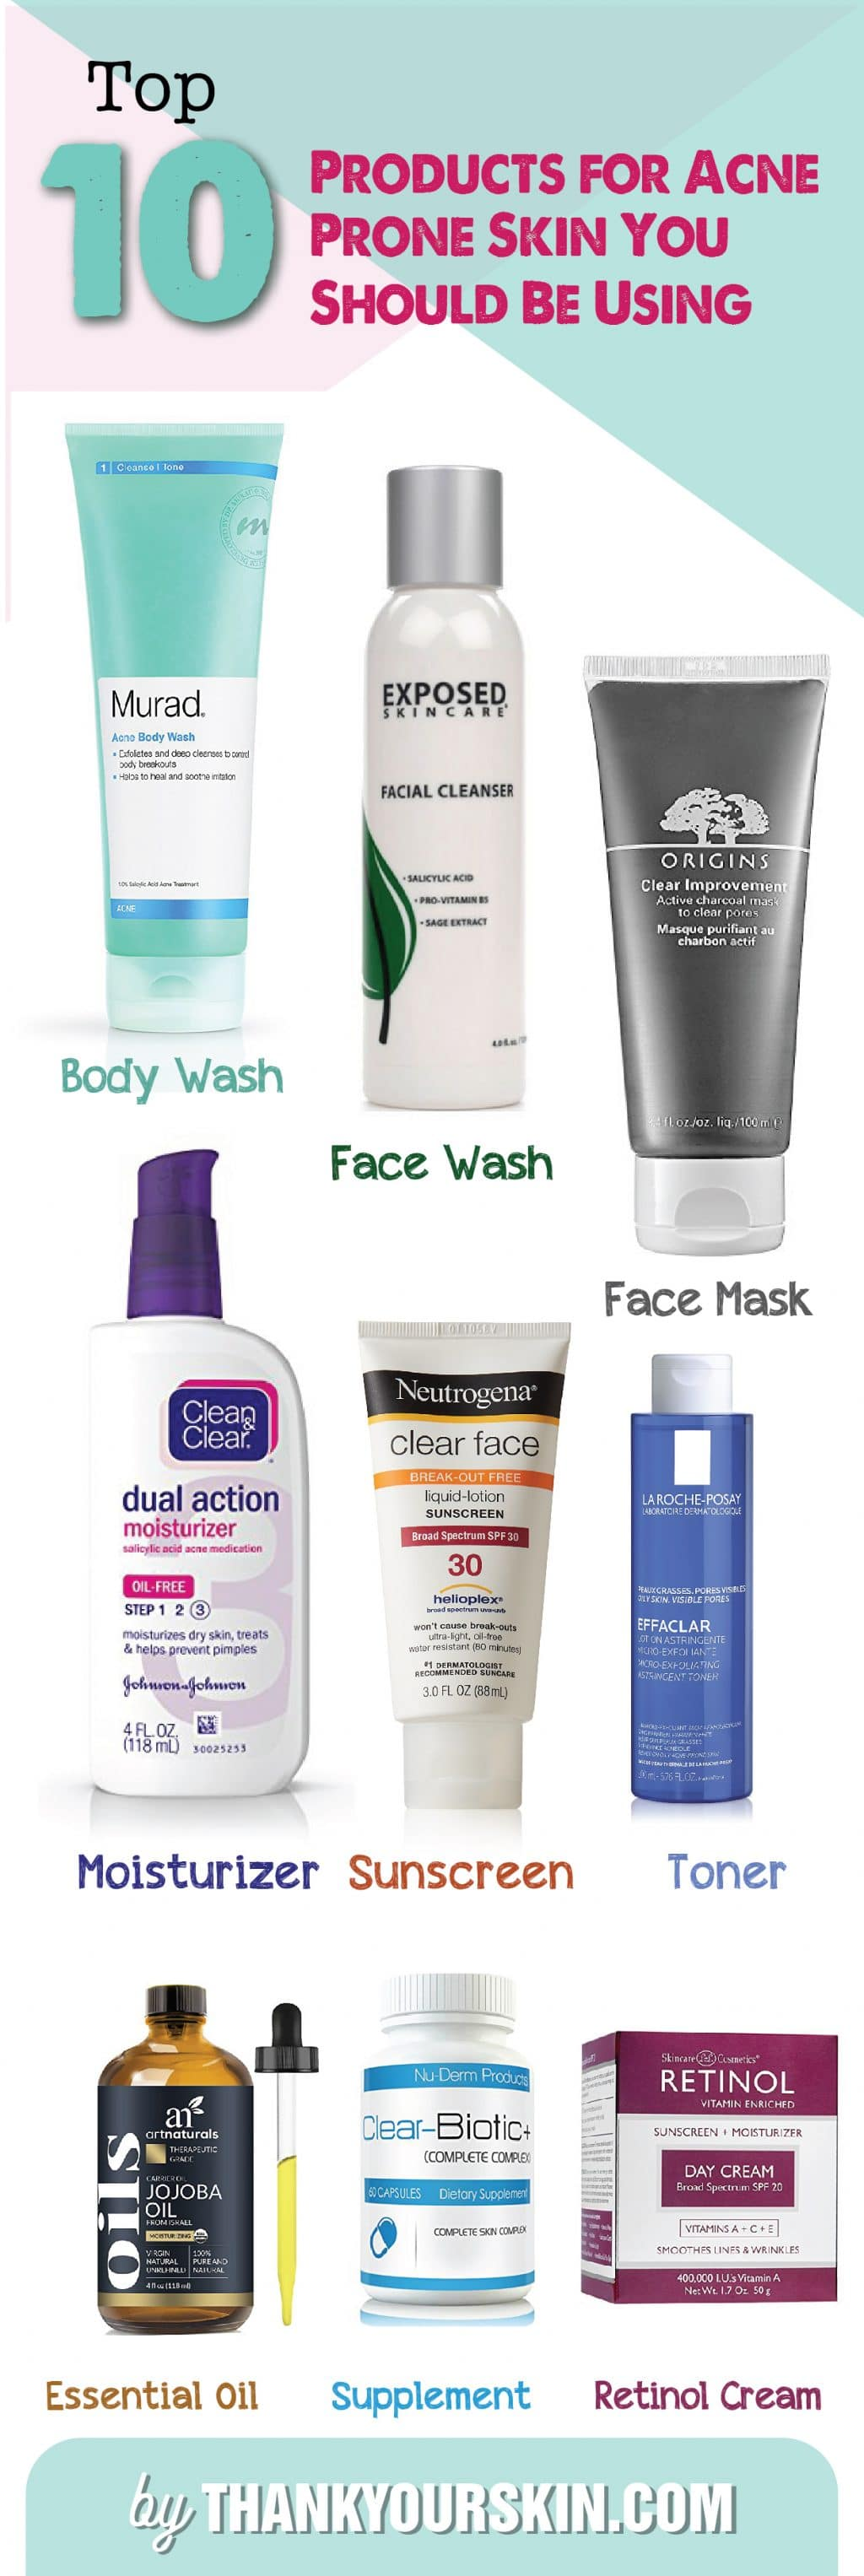 Top 10 Products for Acne-01